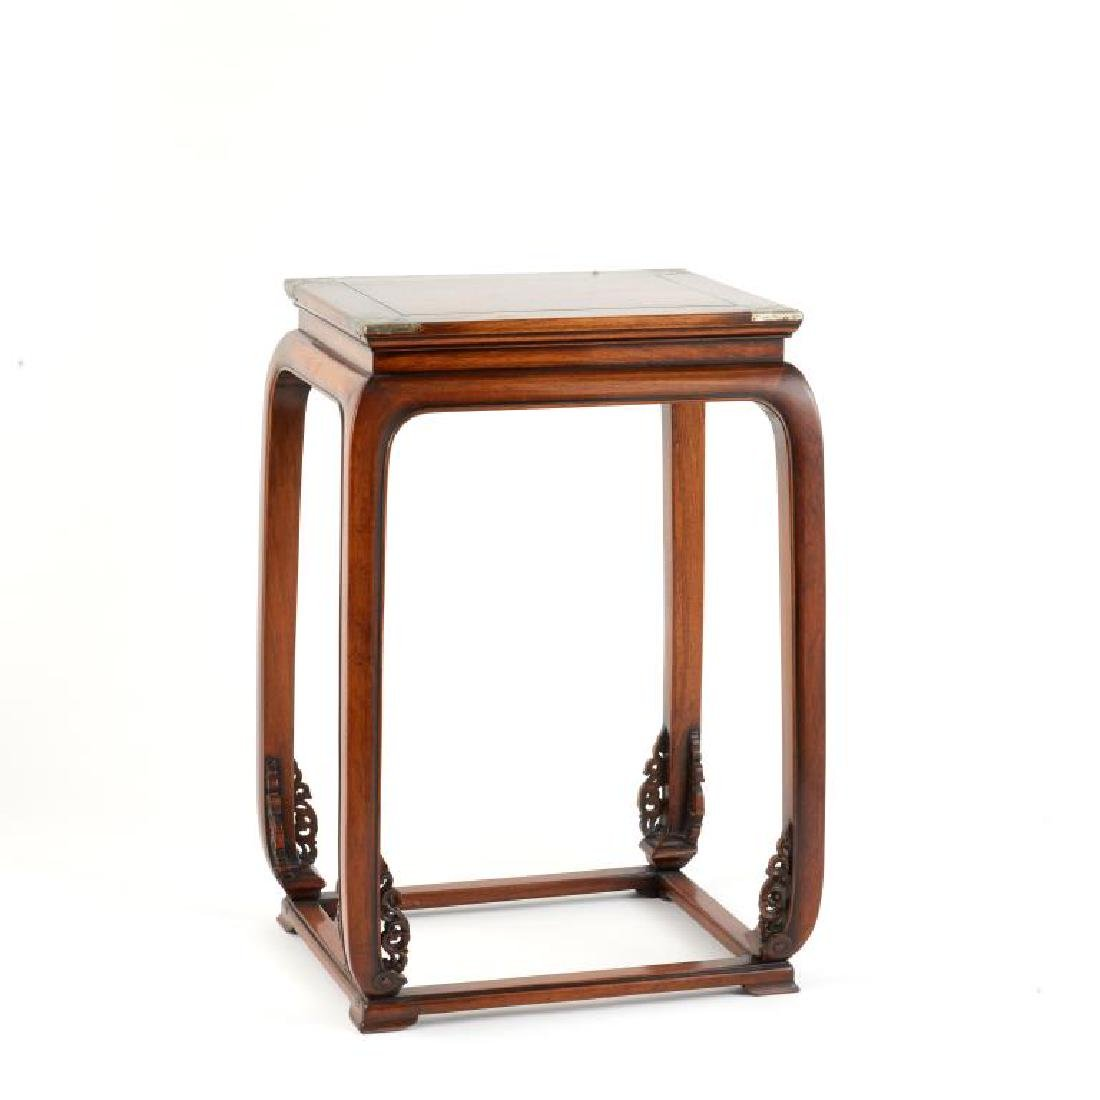 CHINESE HUANGHUALI HARDWOOD SIDE TABLE